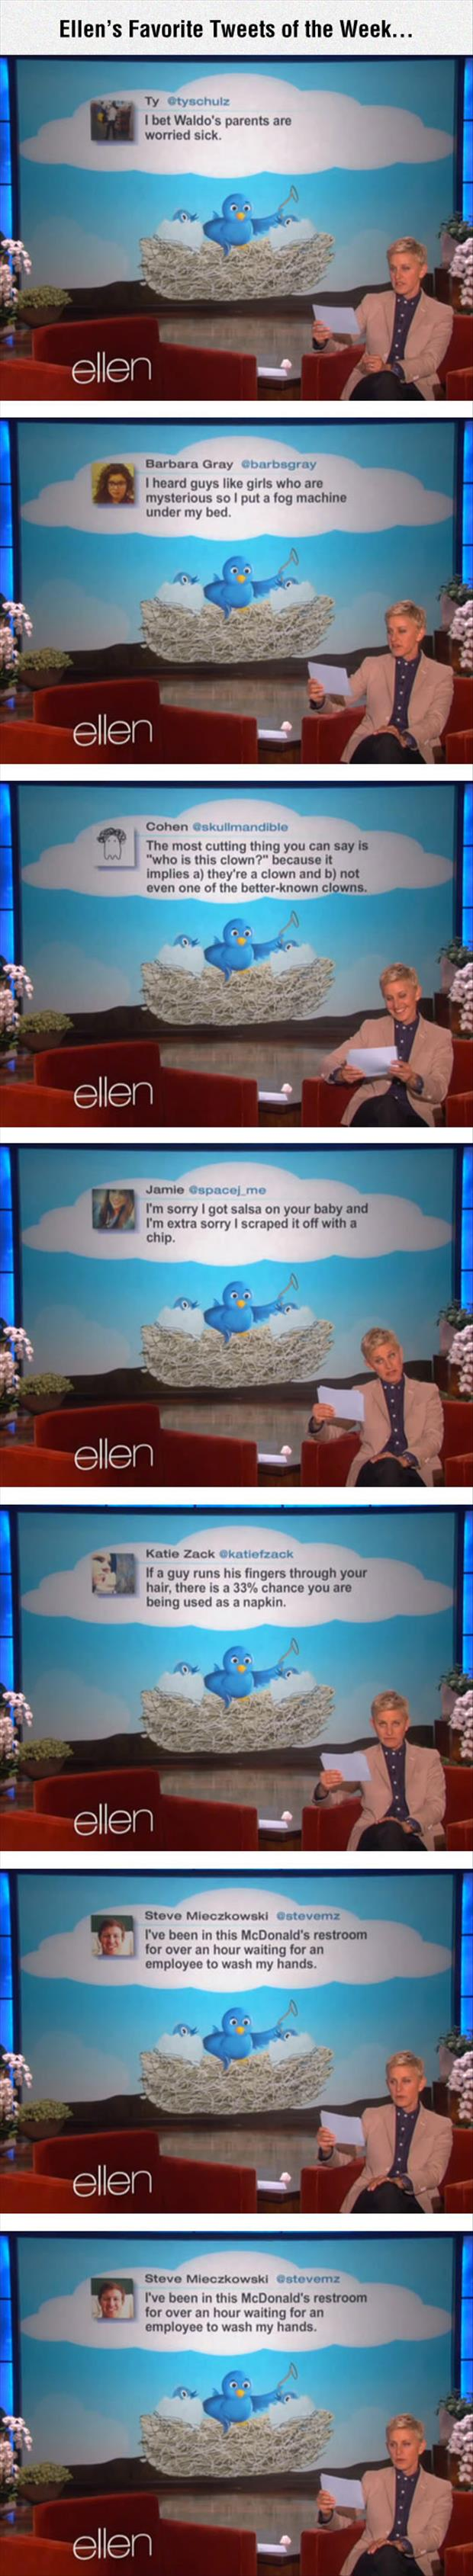 Ellen's favorite twitter quotes